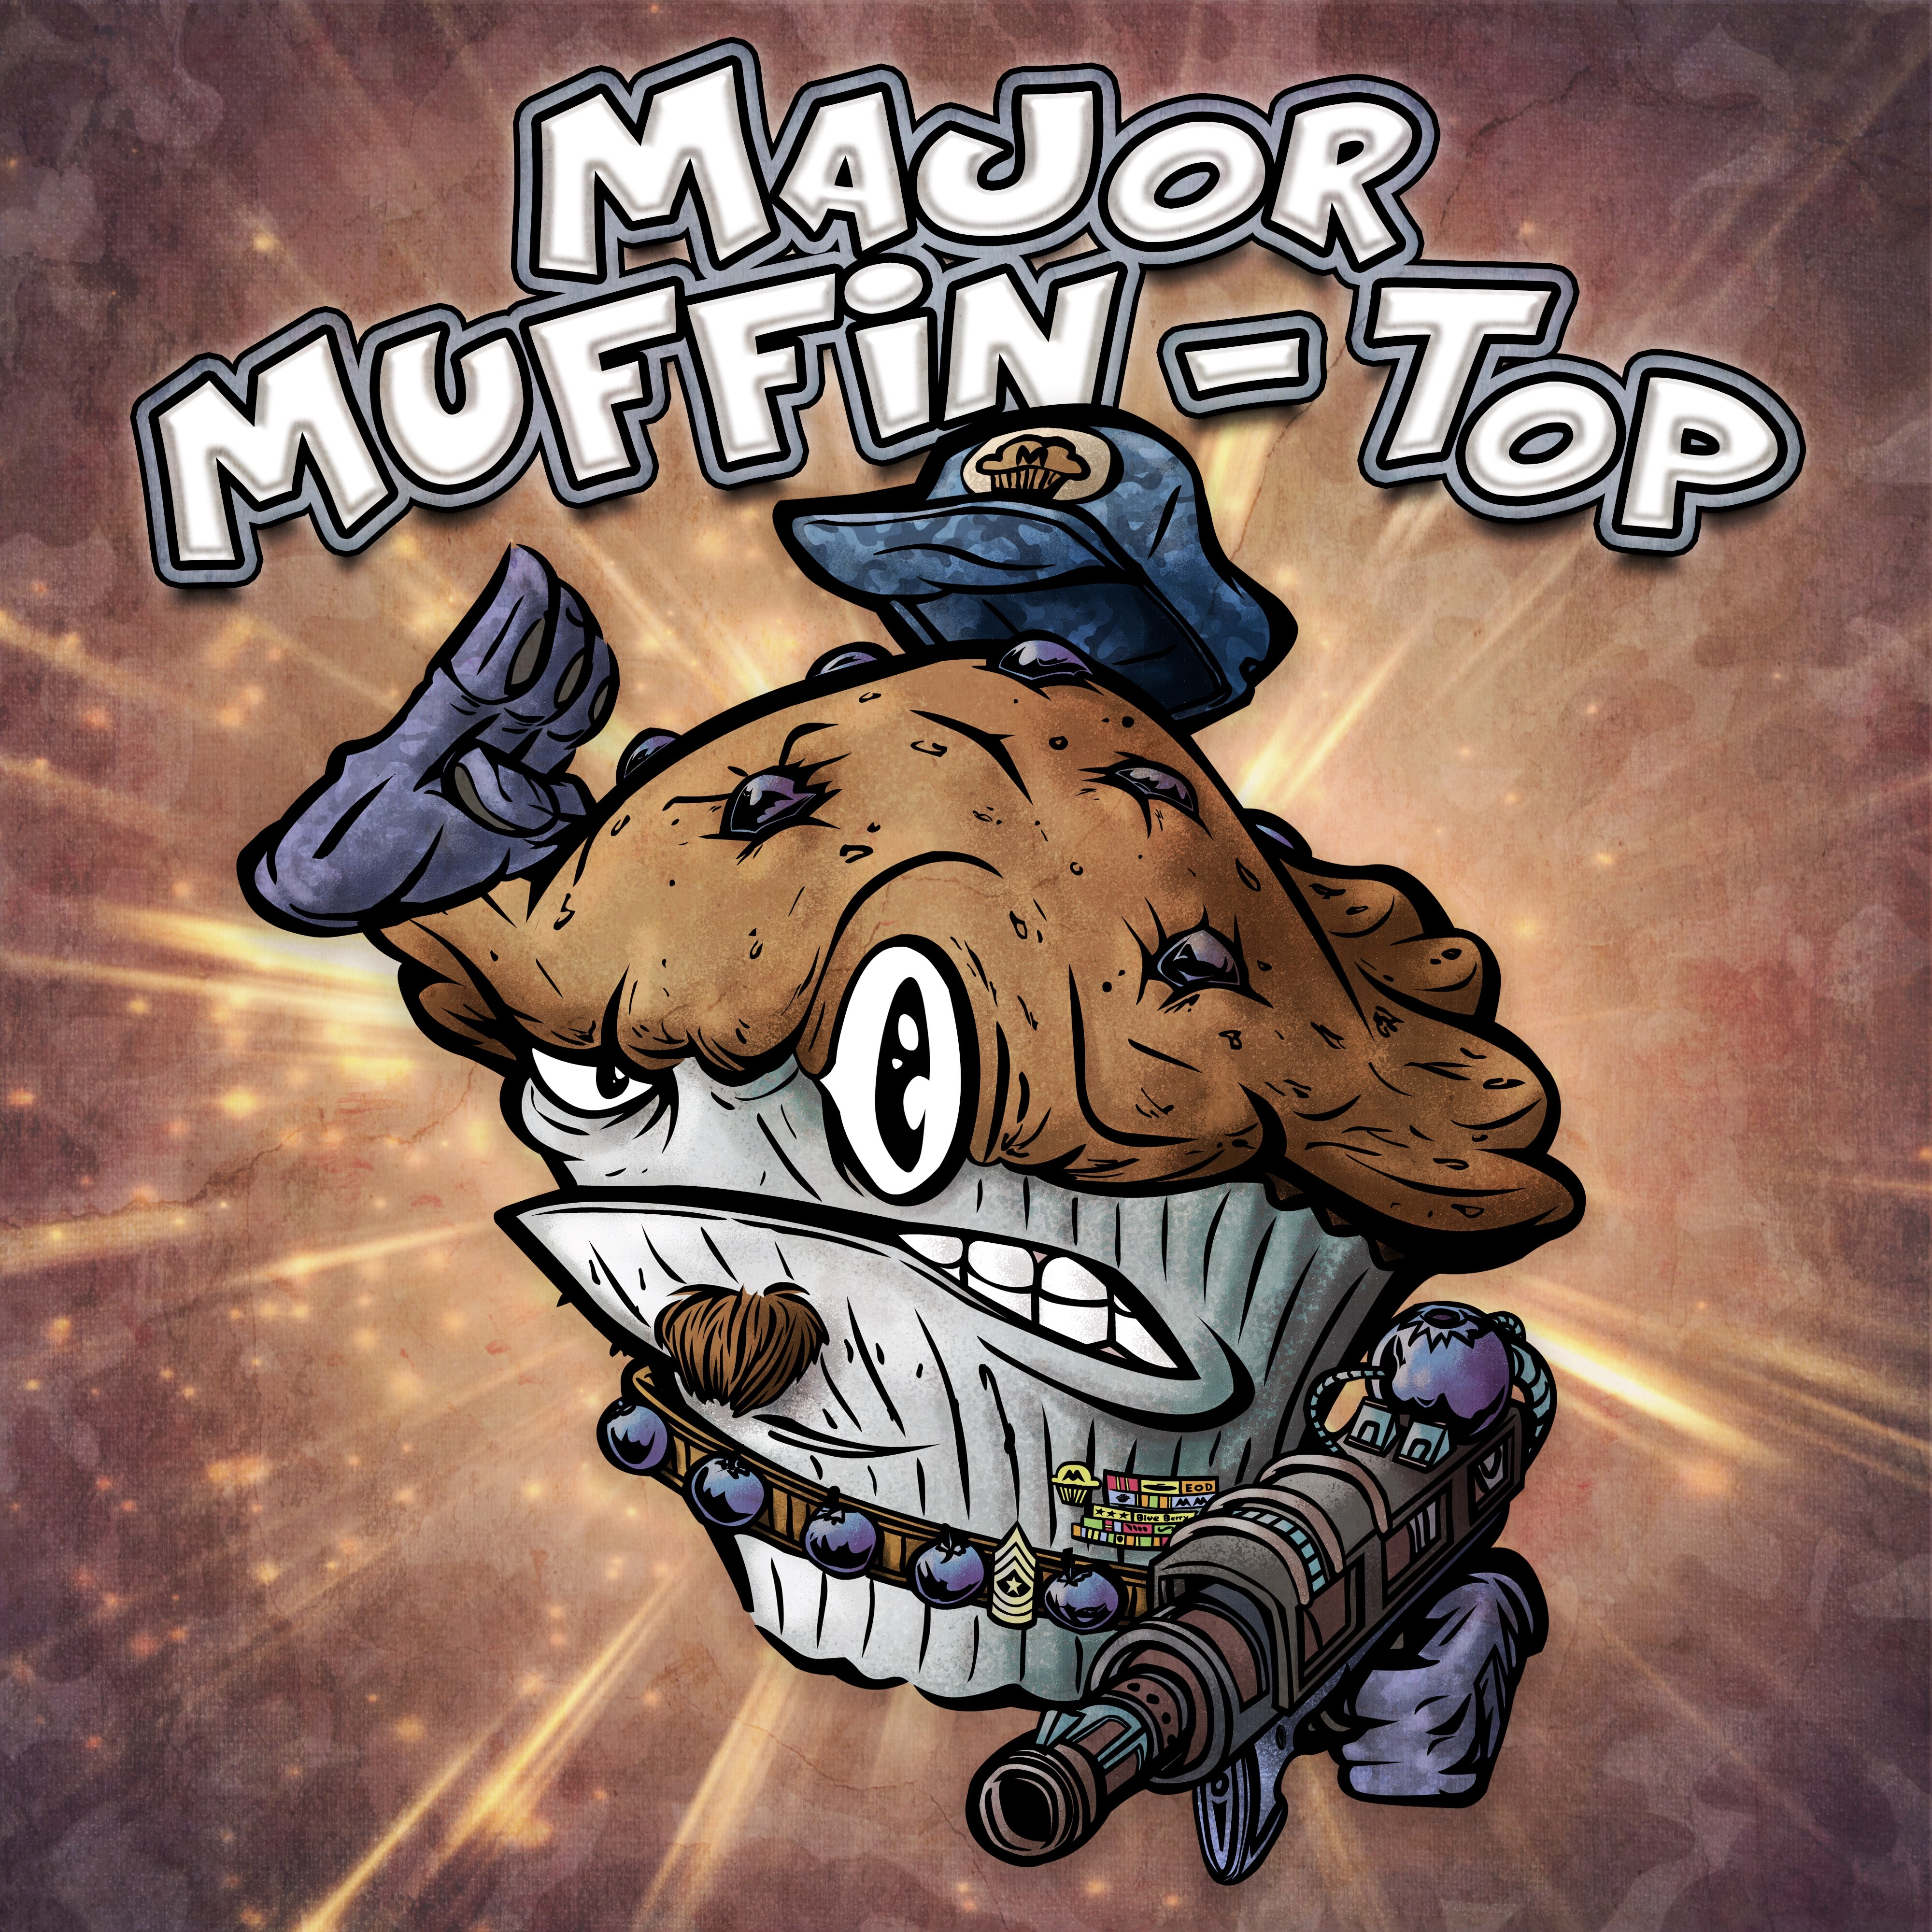 Major Muffin-Top